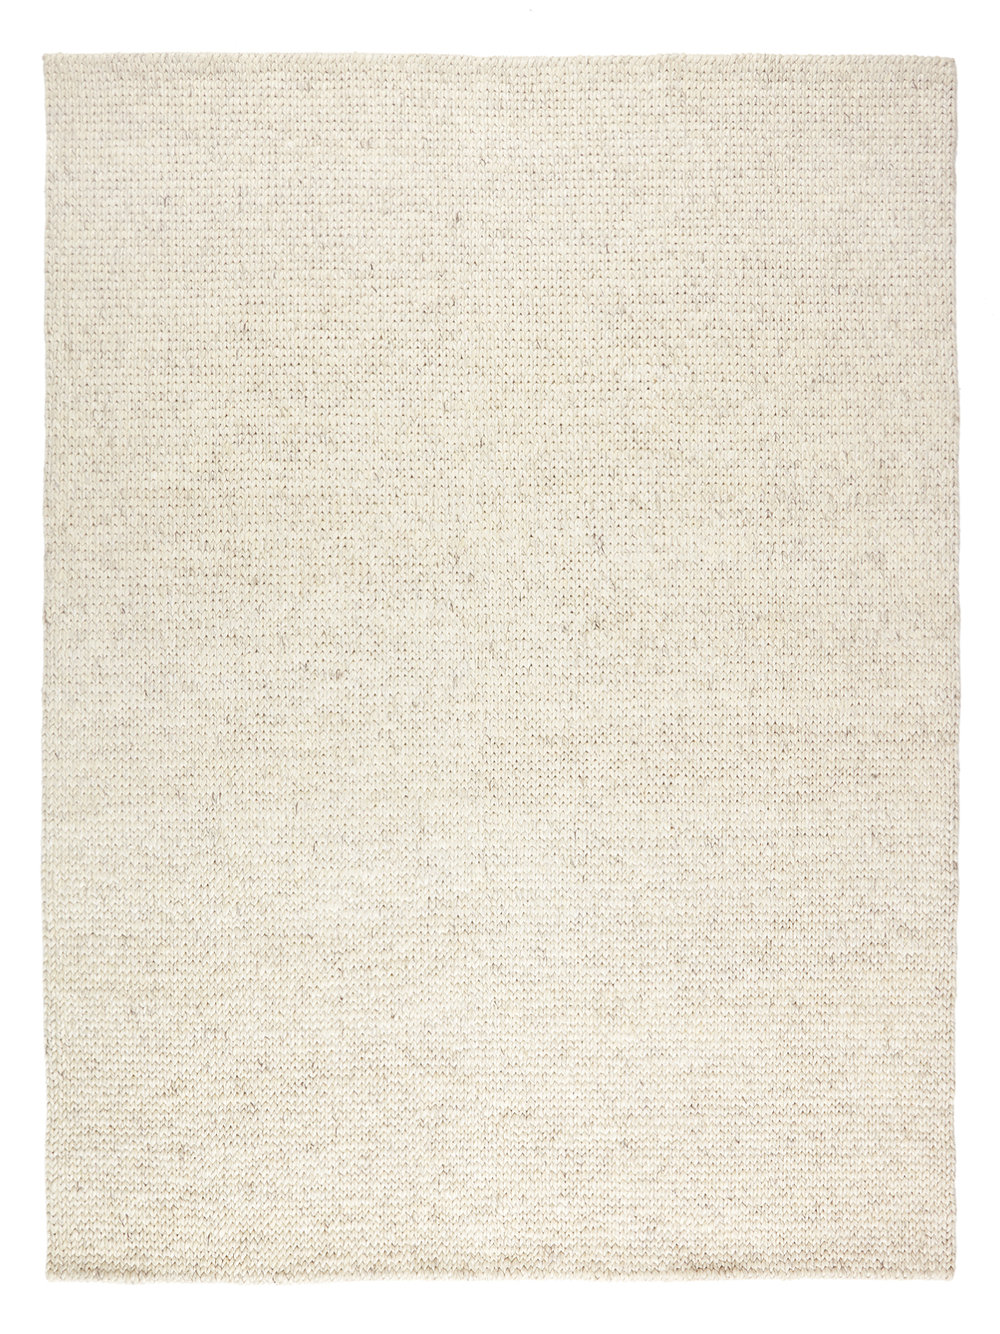 Sierra Weave in Chalk / 1.4x2m Wool Blend / $750 - from Armadillo & Co. Available in 5 other colours and from Terrace Floor and Furnishings in Adelaide.